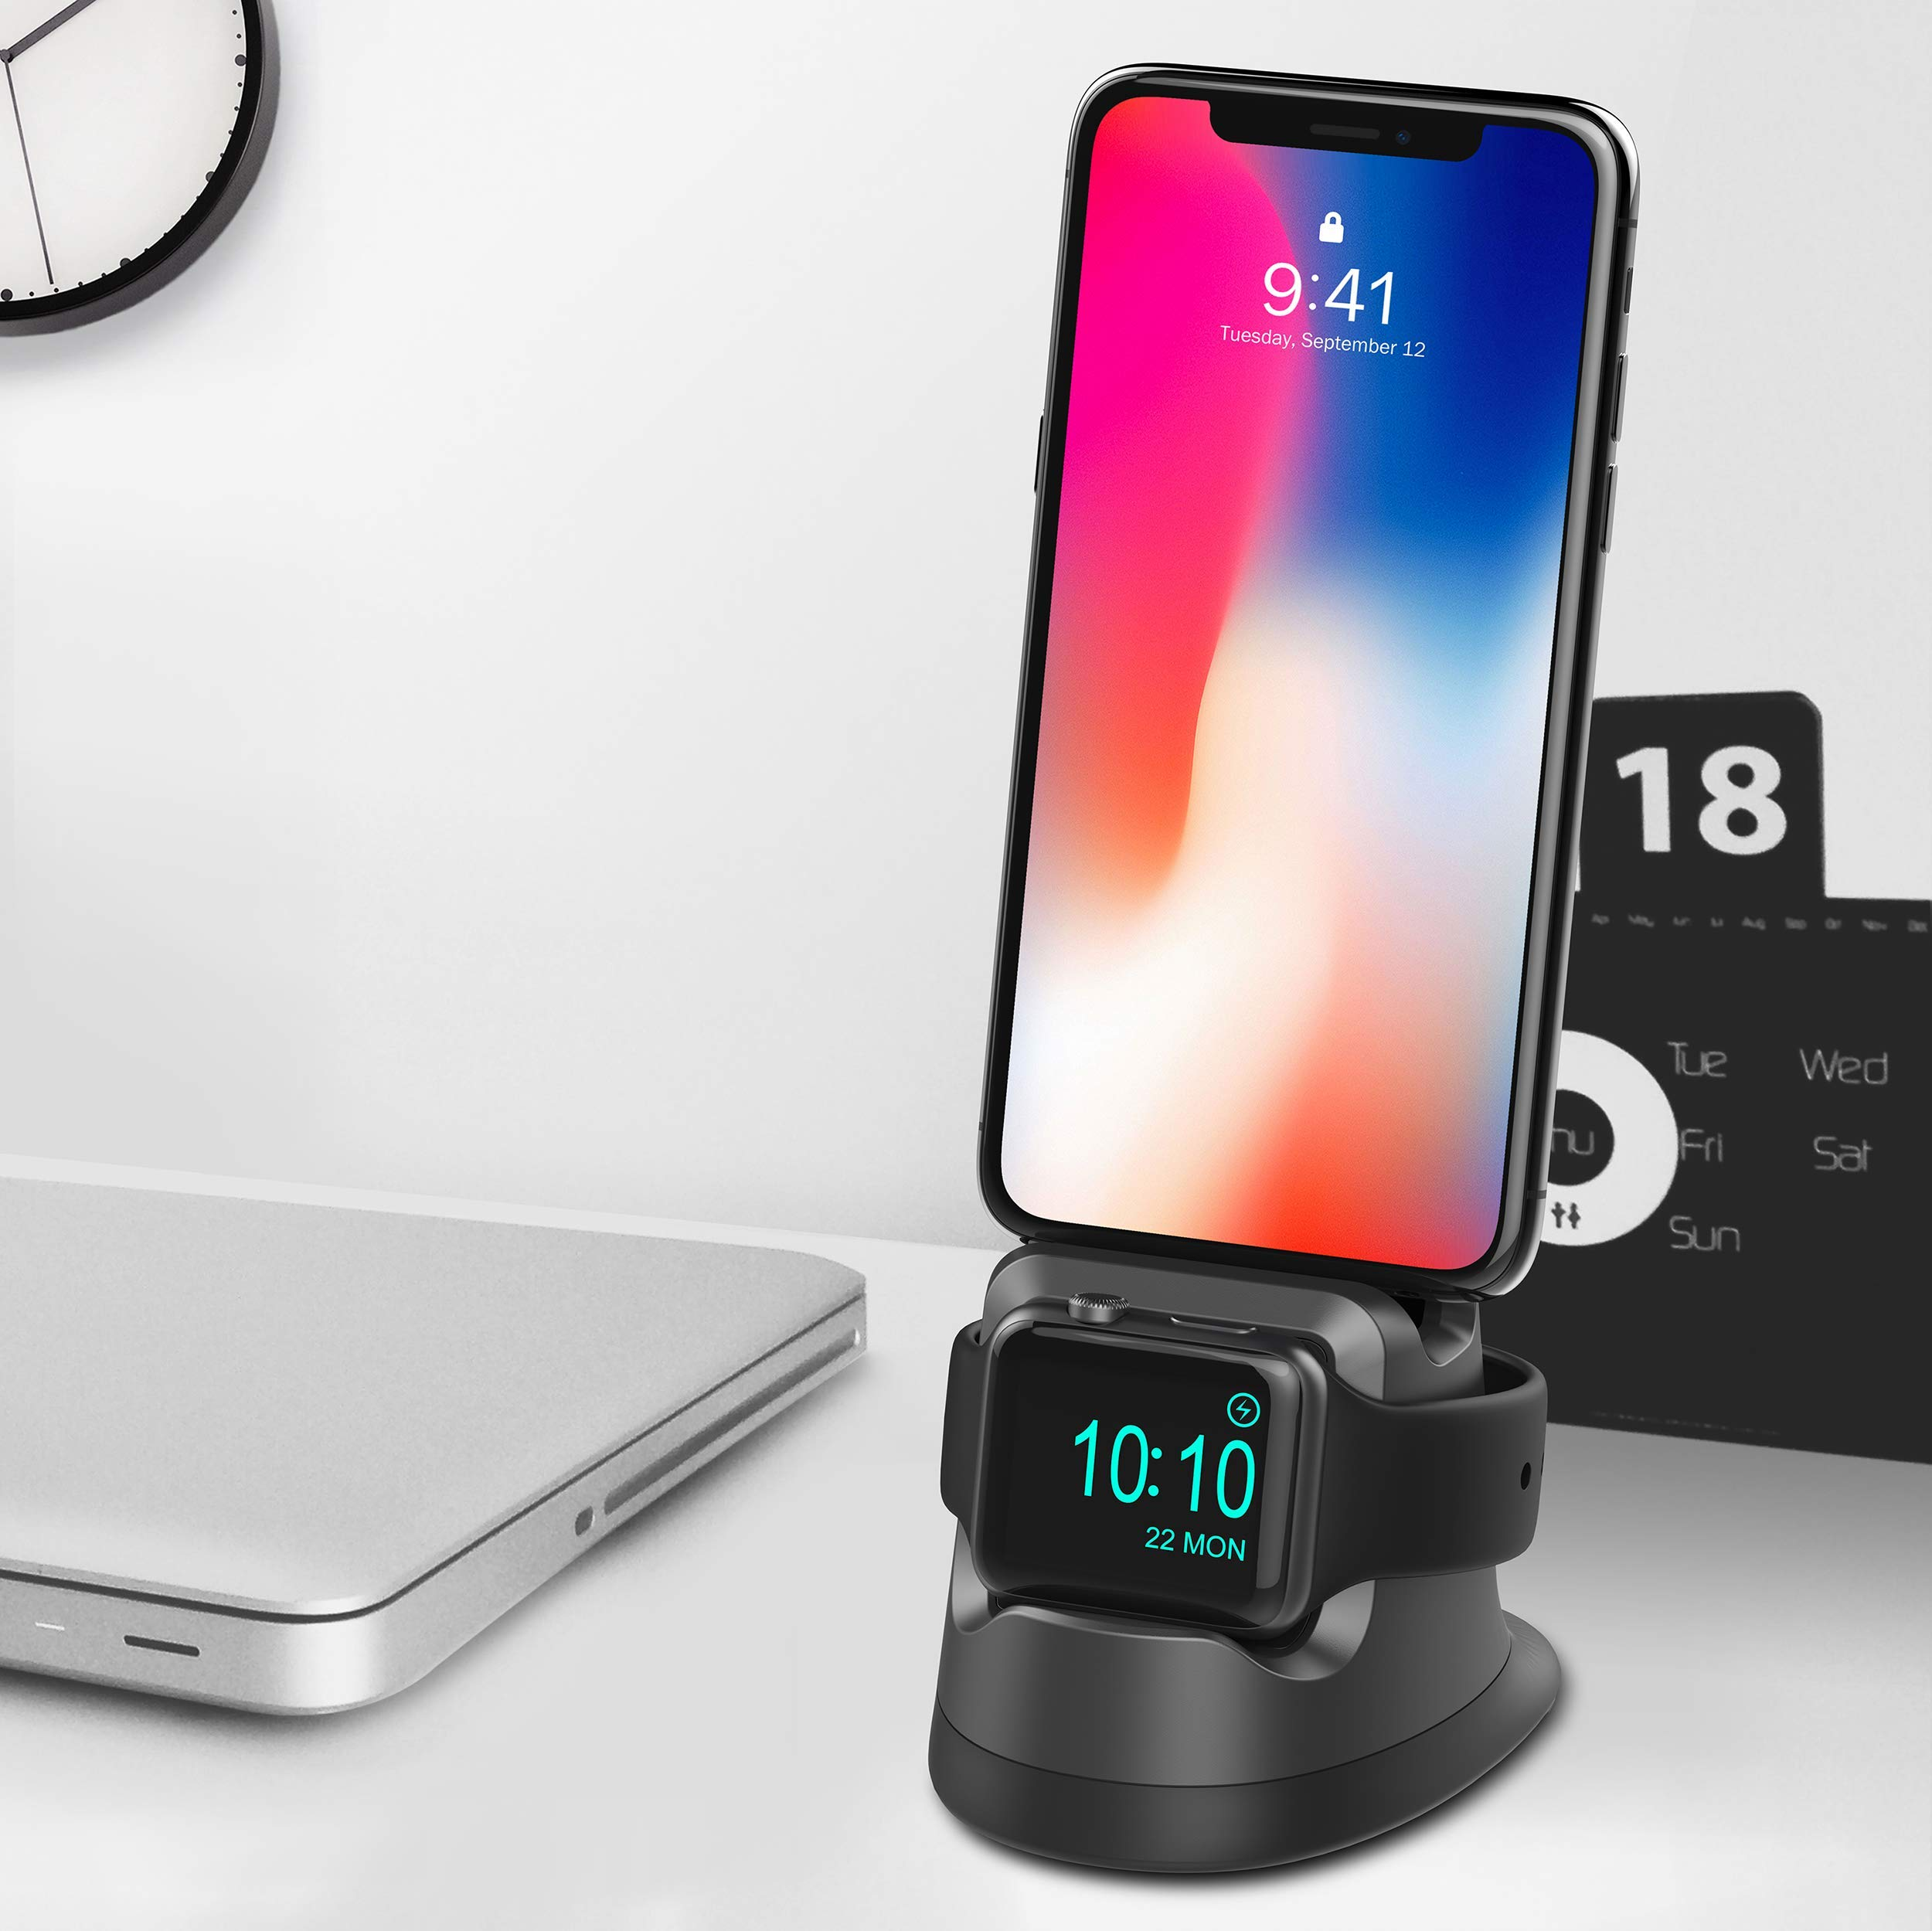 Cereecoo Stand Compatible for Apple Watch 4, Charging Stand Holder Compatible for iPhone Airpods 2 in 1 Charging Dock Compatible for iWatch Series 4/3/2/1 iPhoneX/8/8Plus/7/7Plus/6s/6s Plus